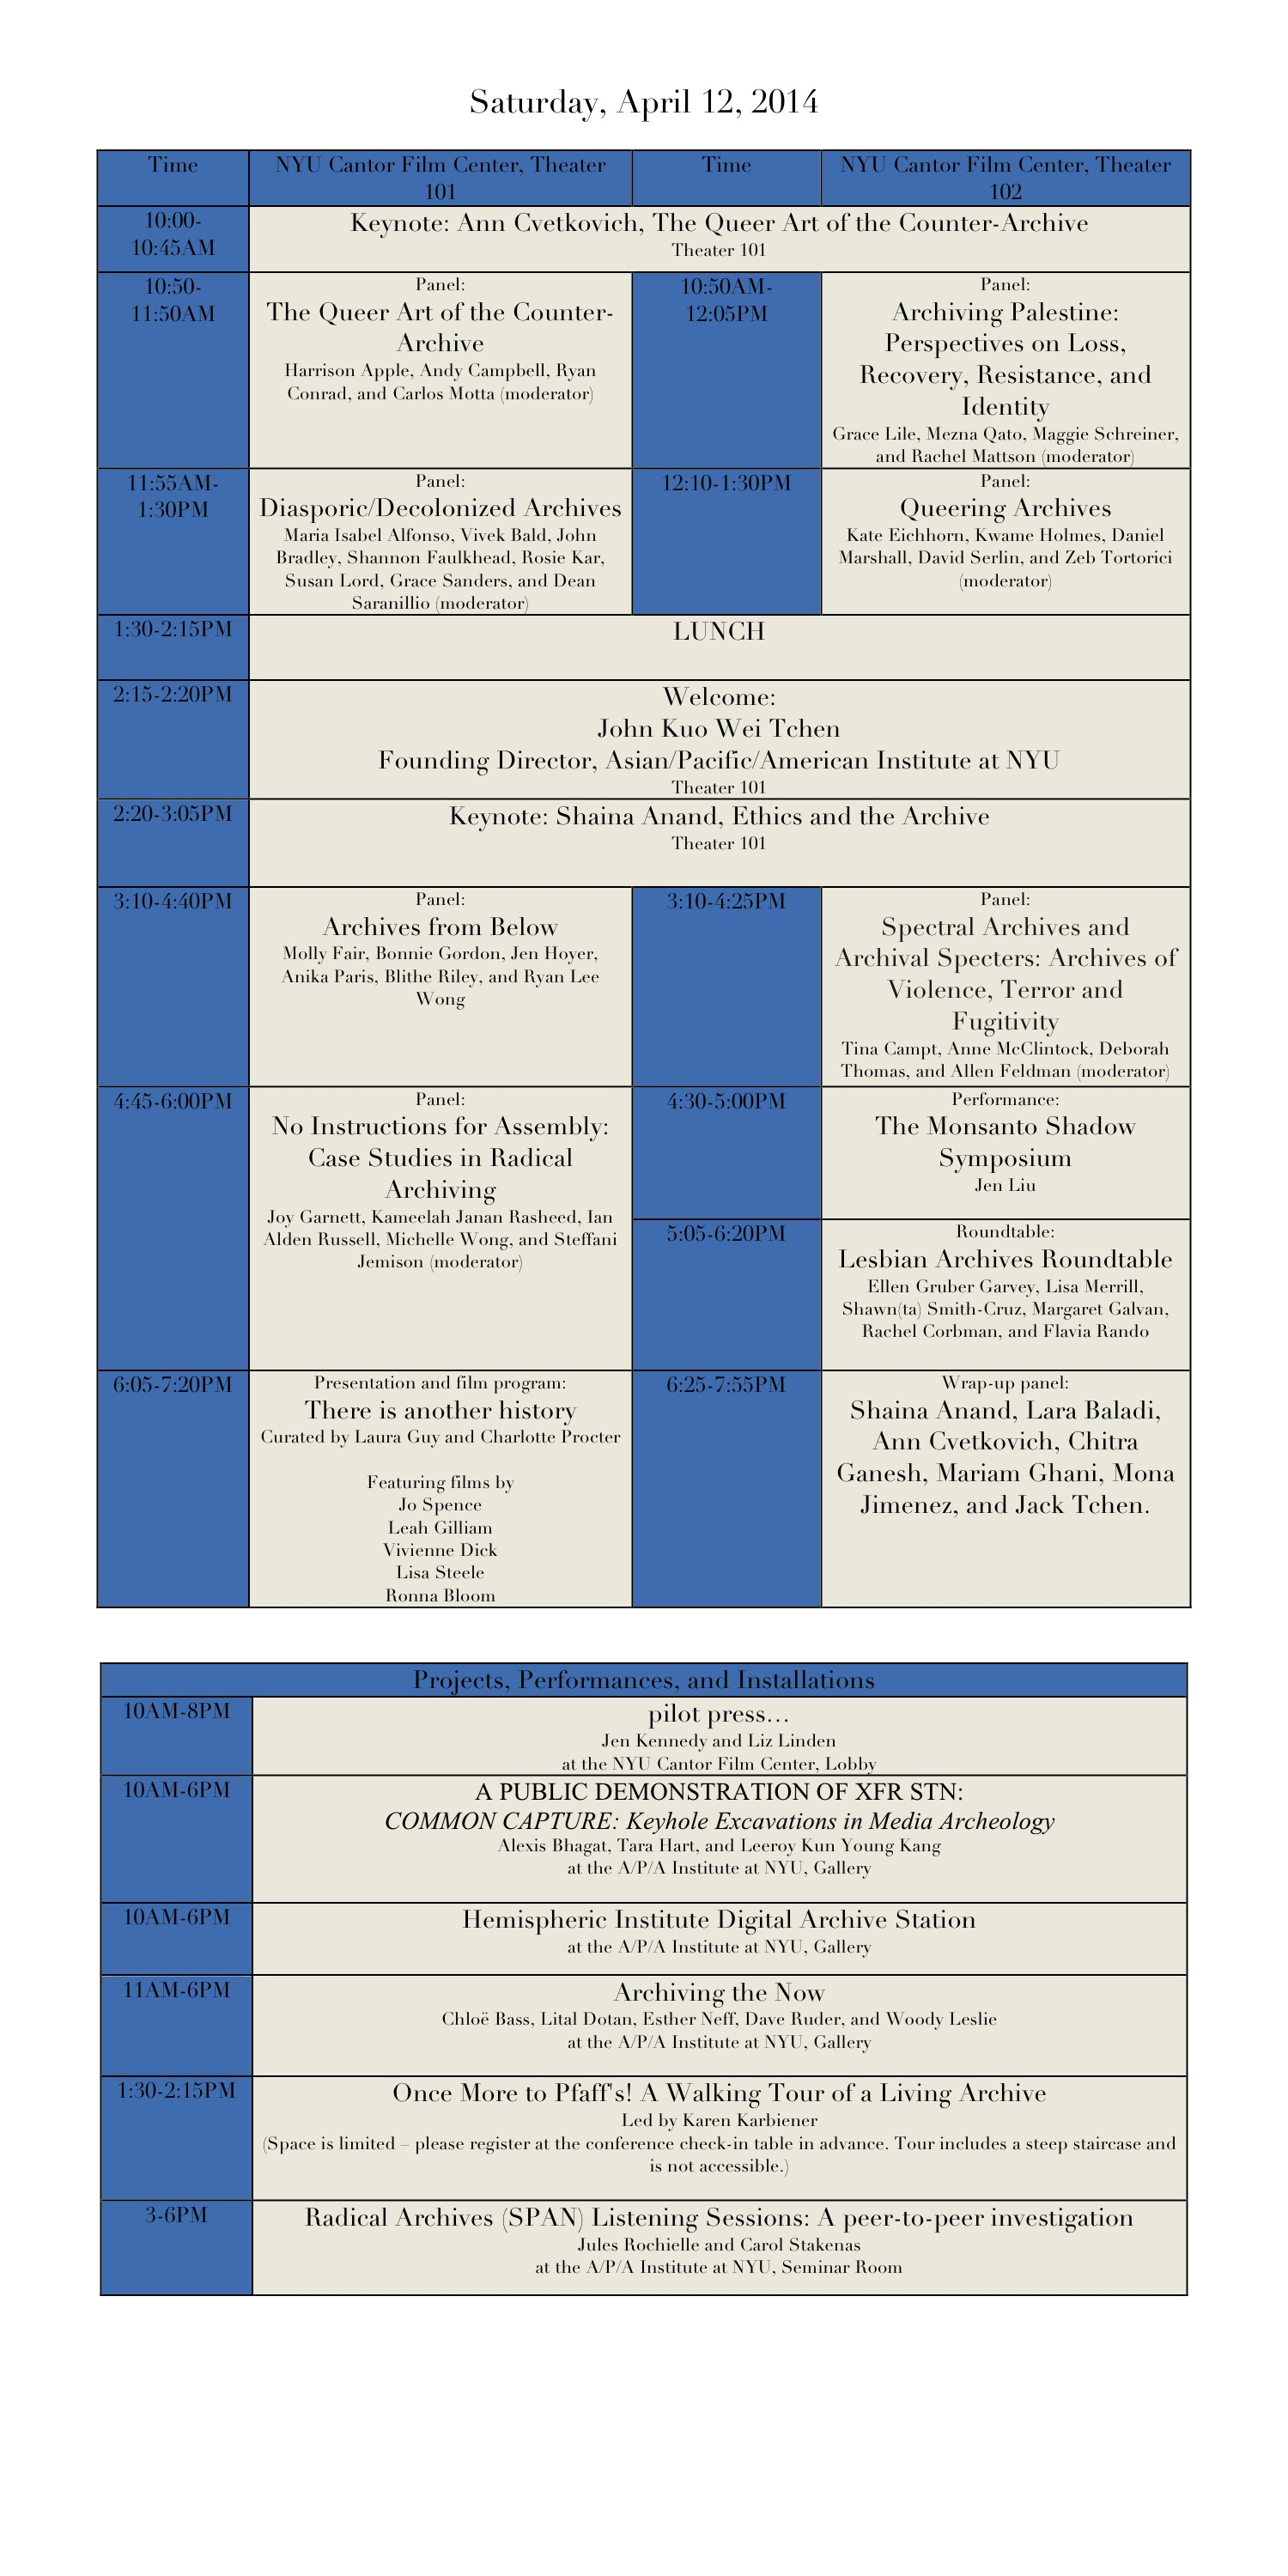 Radical Archives Conference Schedule-am-page2